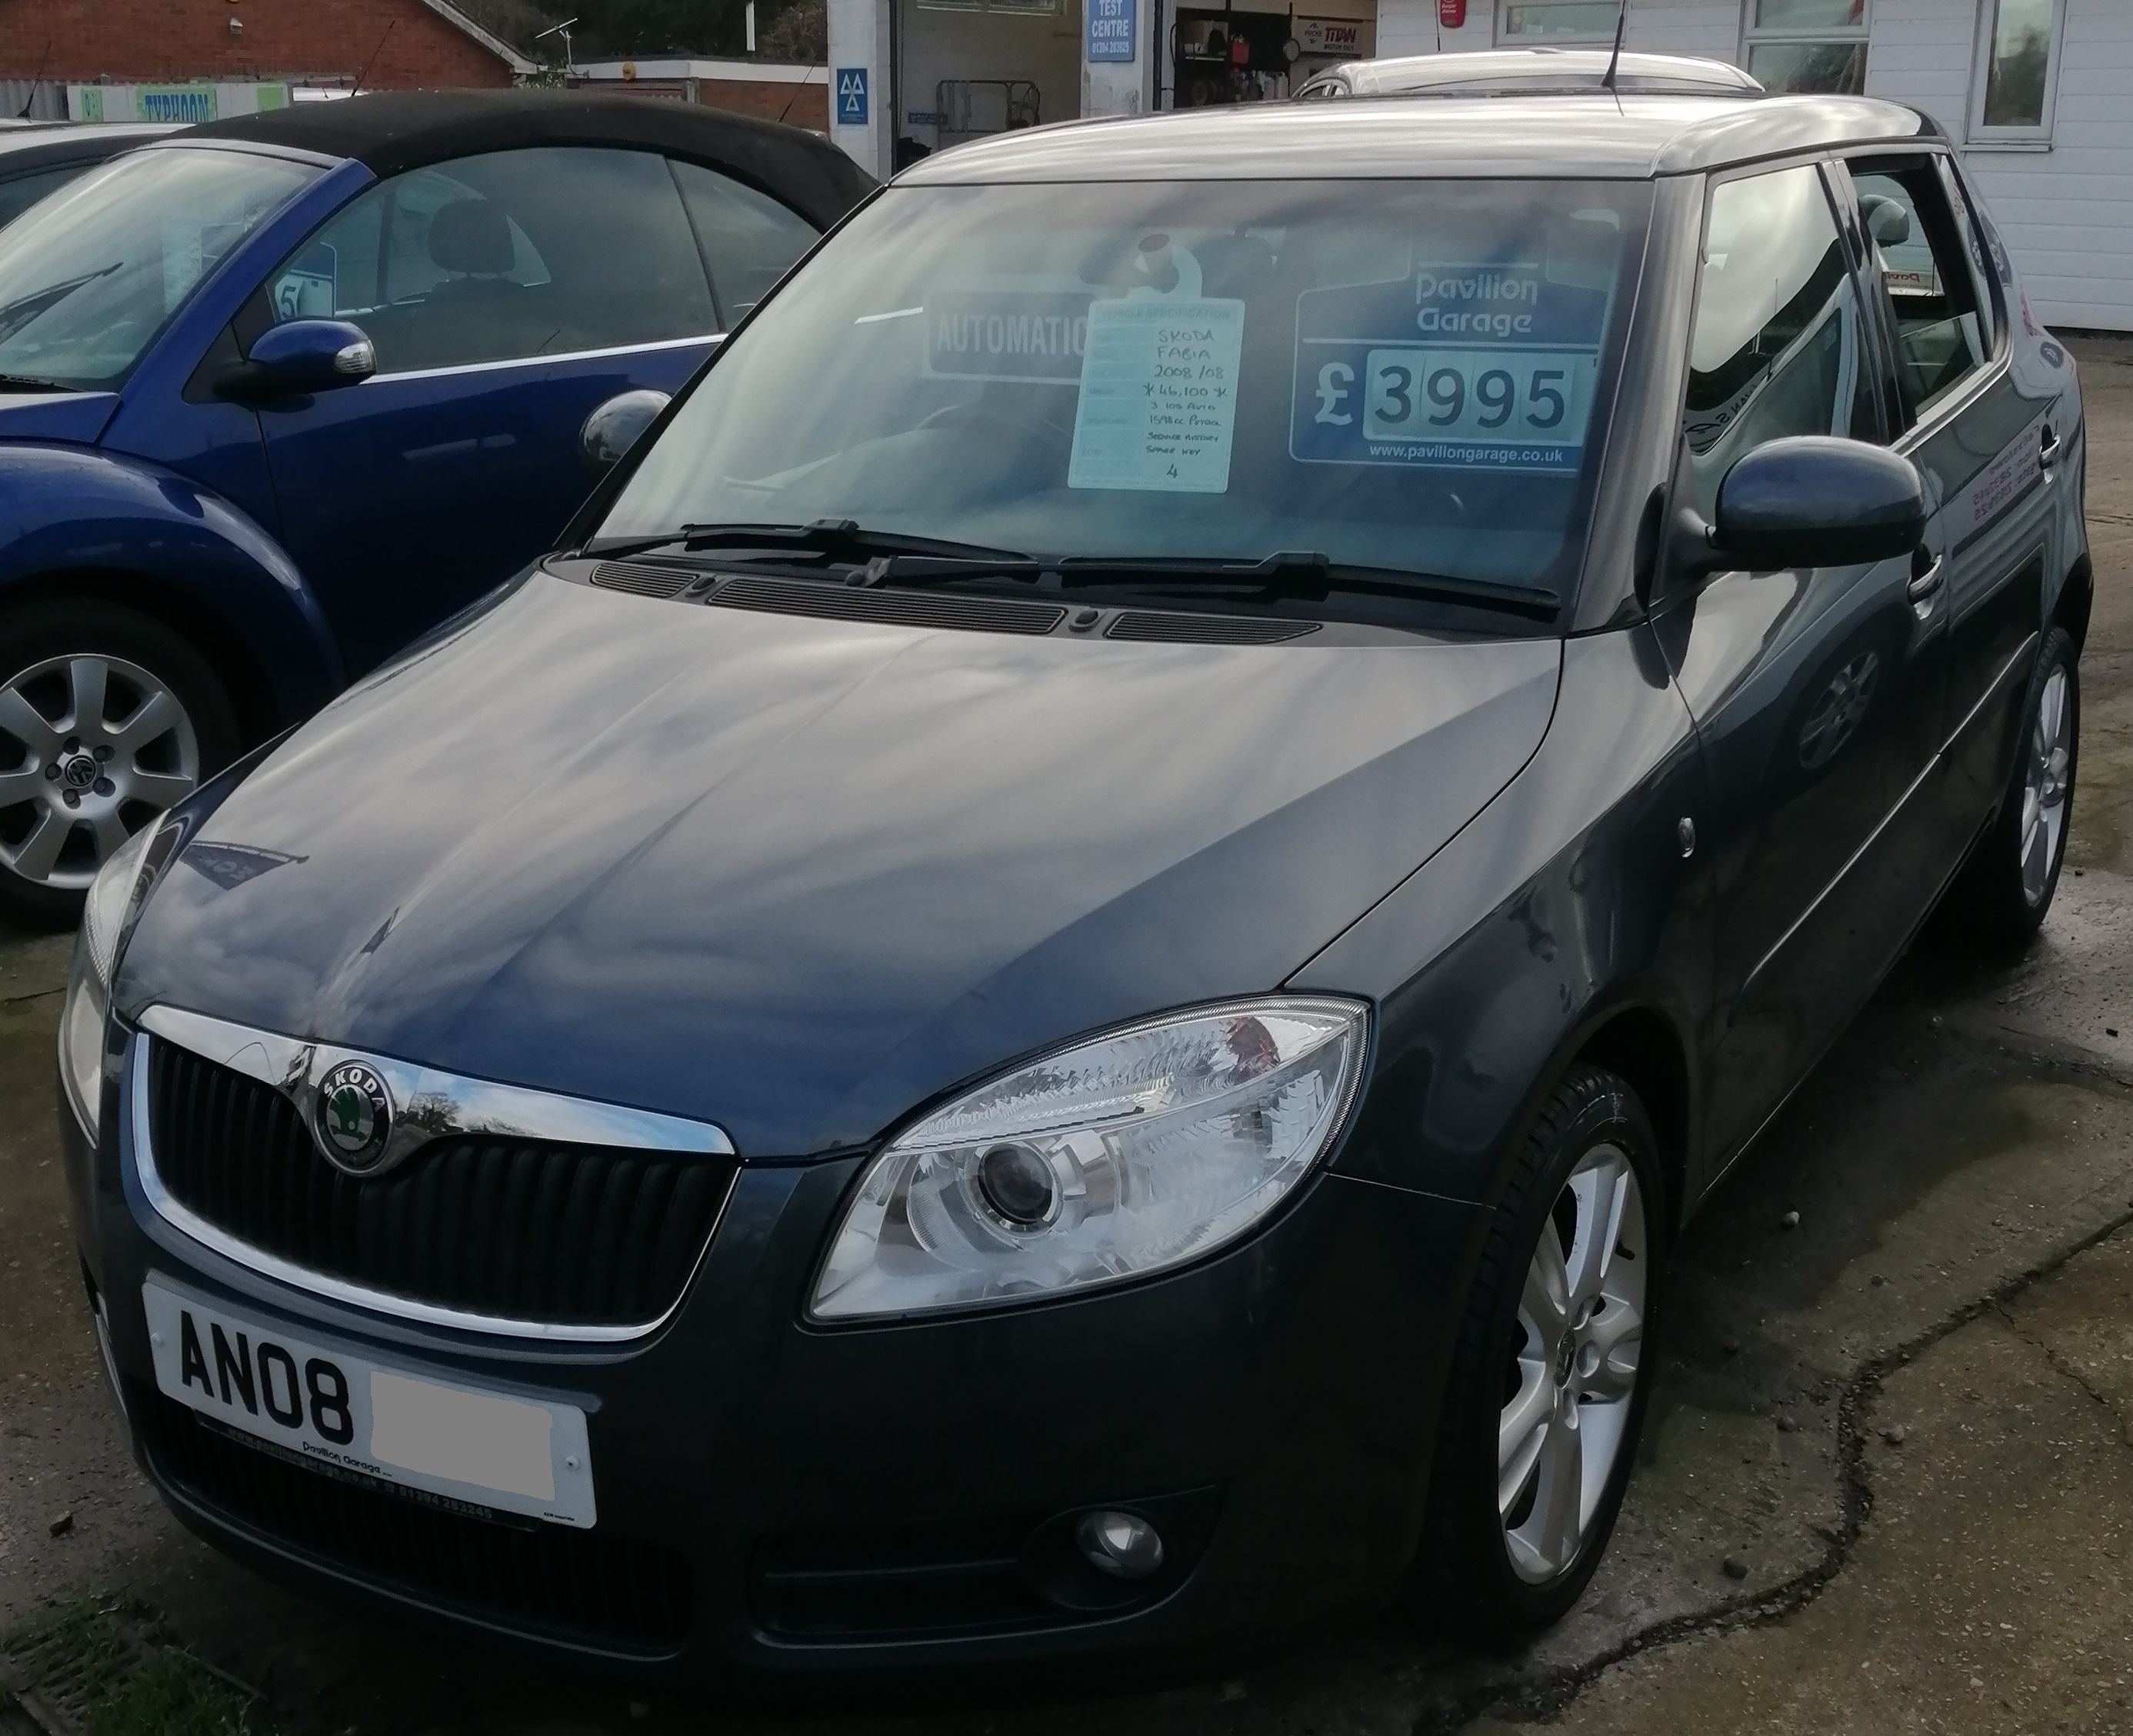 Skoda Fabia 3 105 Automatic 1598cc - Petrol 2008 / 08 *** ONLY 46,050 miles *** Service History Spare Key £260 per year Road Tax £3995